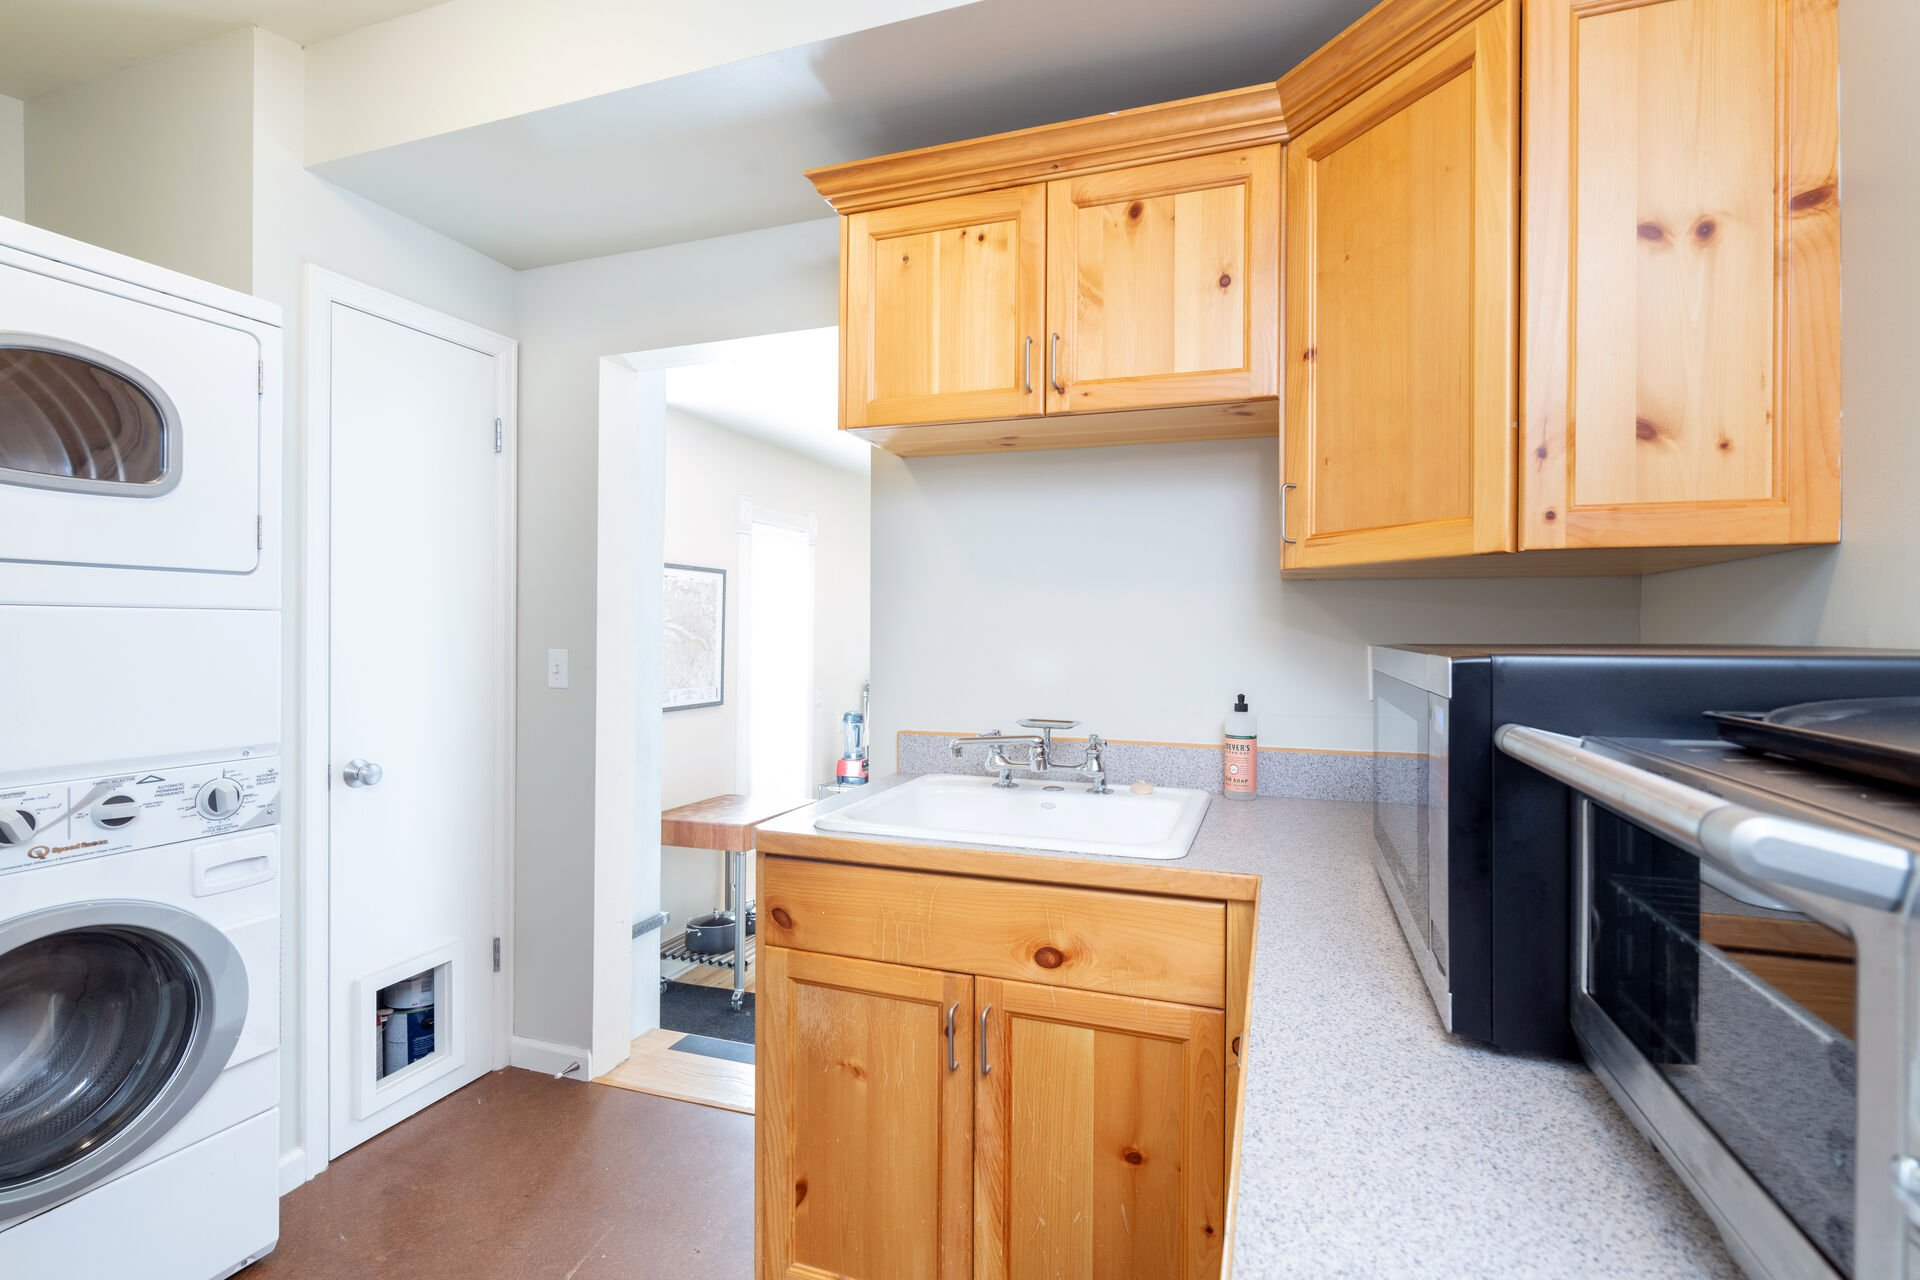 Laundry room with washer, dryer, sink, microwave, and toaster oven.